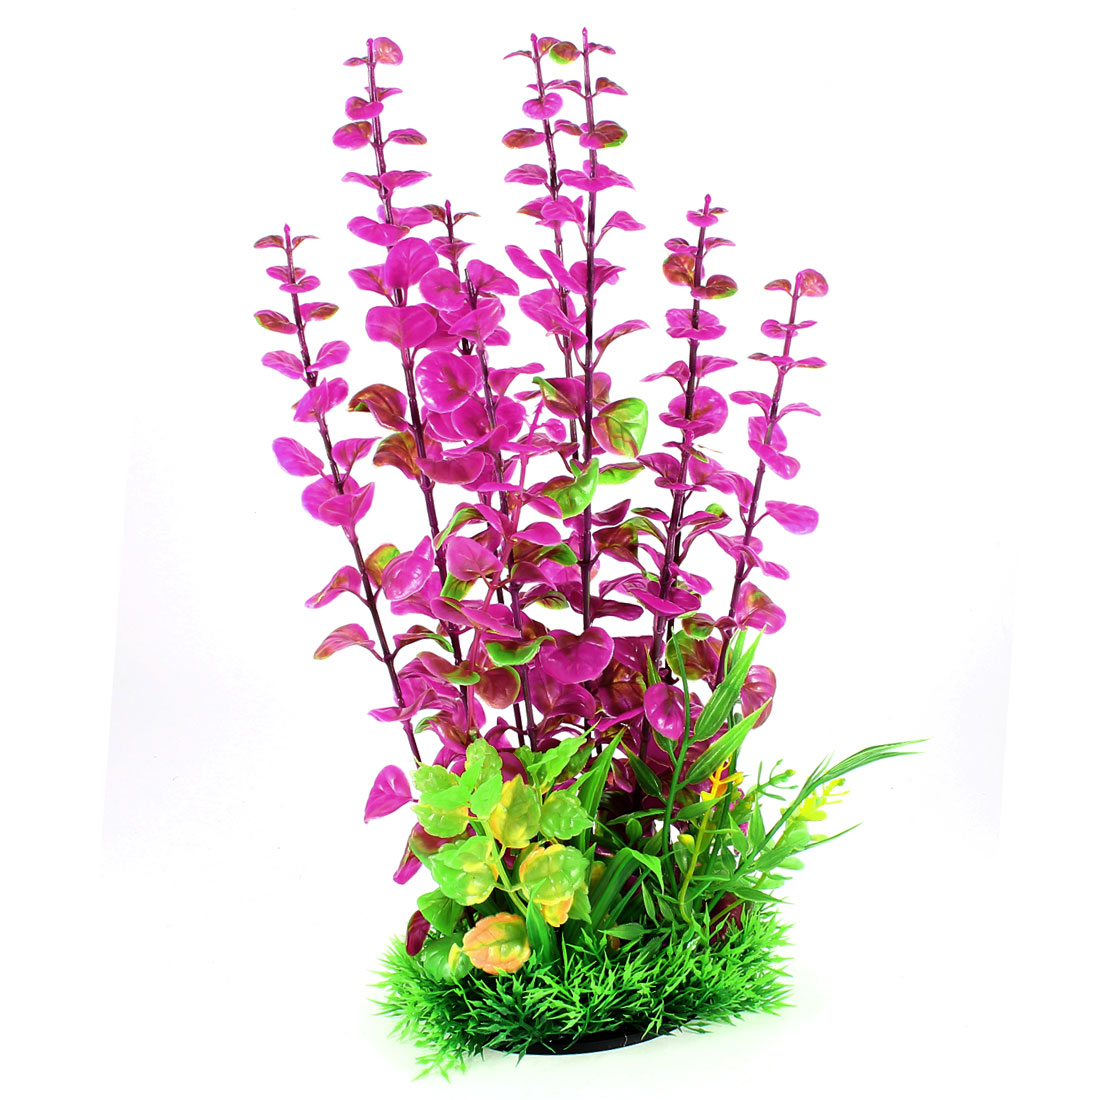 Manmade Vivid Green Fuchsia Plastic Underwater Grass Plant for Aquarium